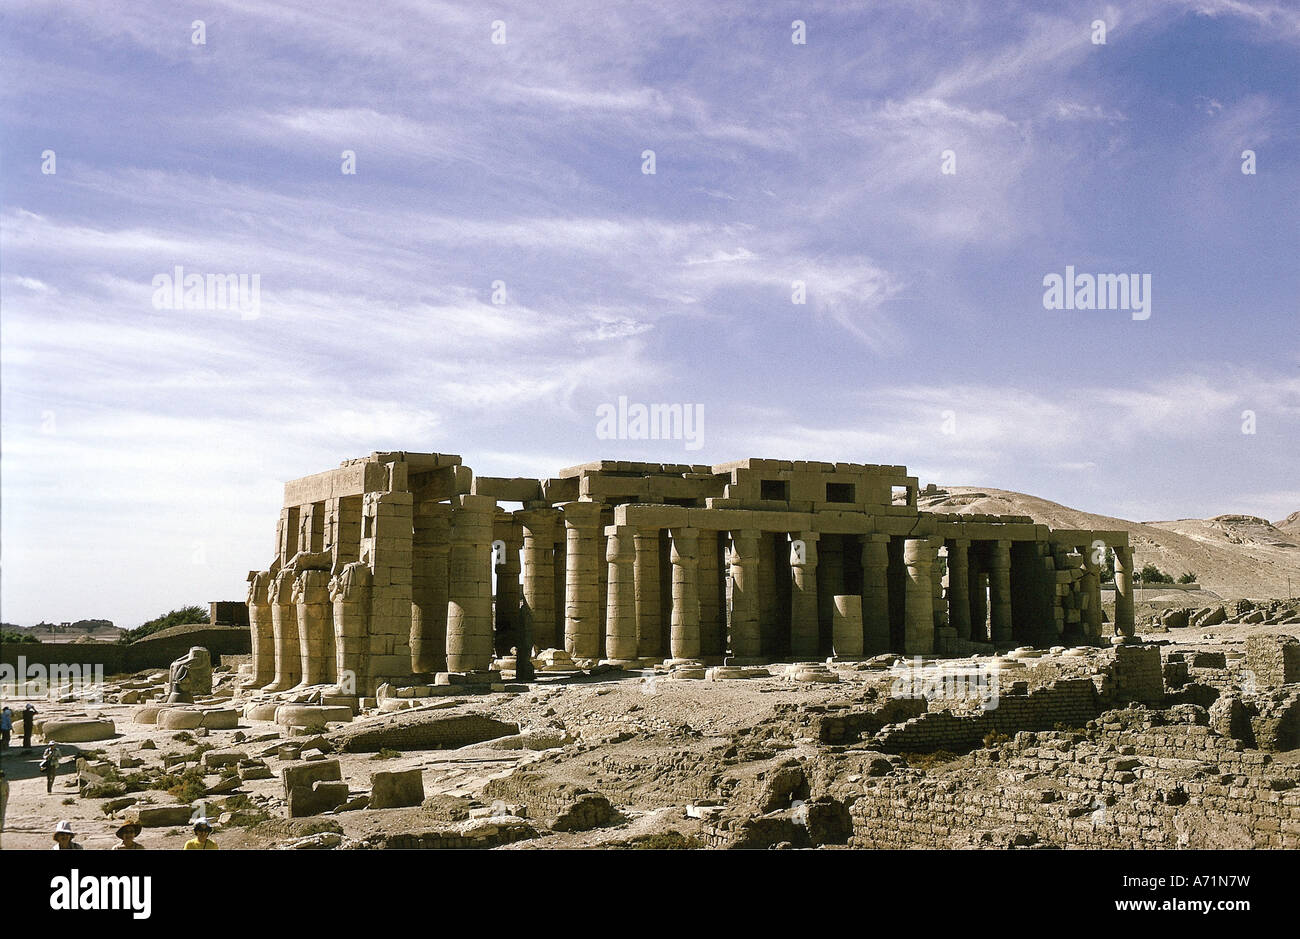 geography / travel, Egypt, Thebes (west), Ramesseum, temple of Amun, funerary temple of King Ramesses, Ramses II. - Stock Image